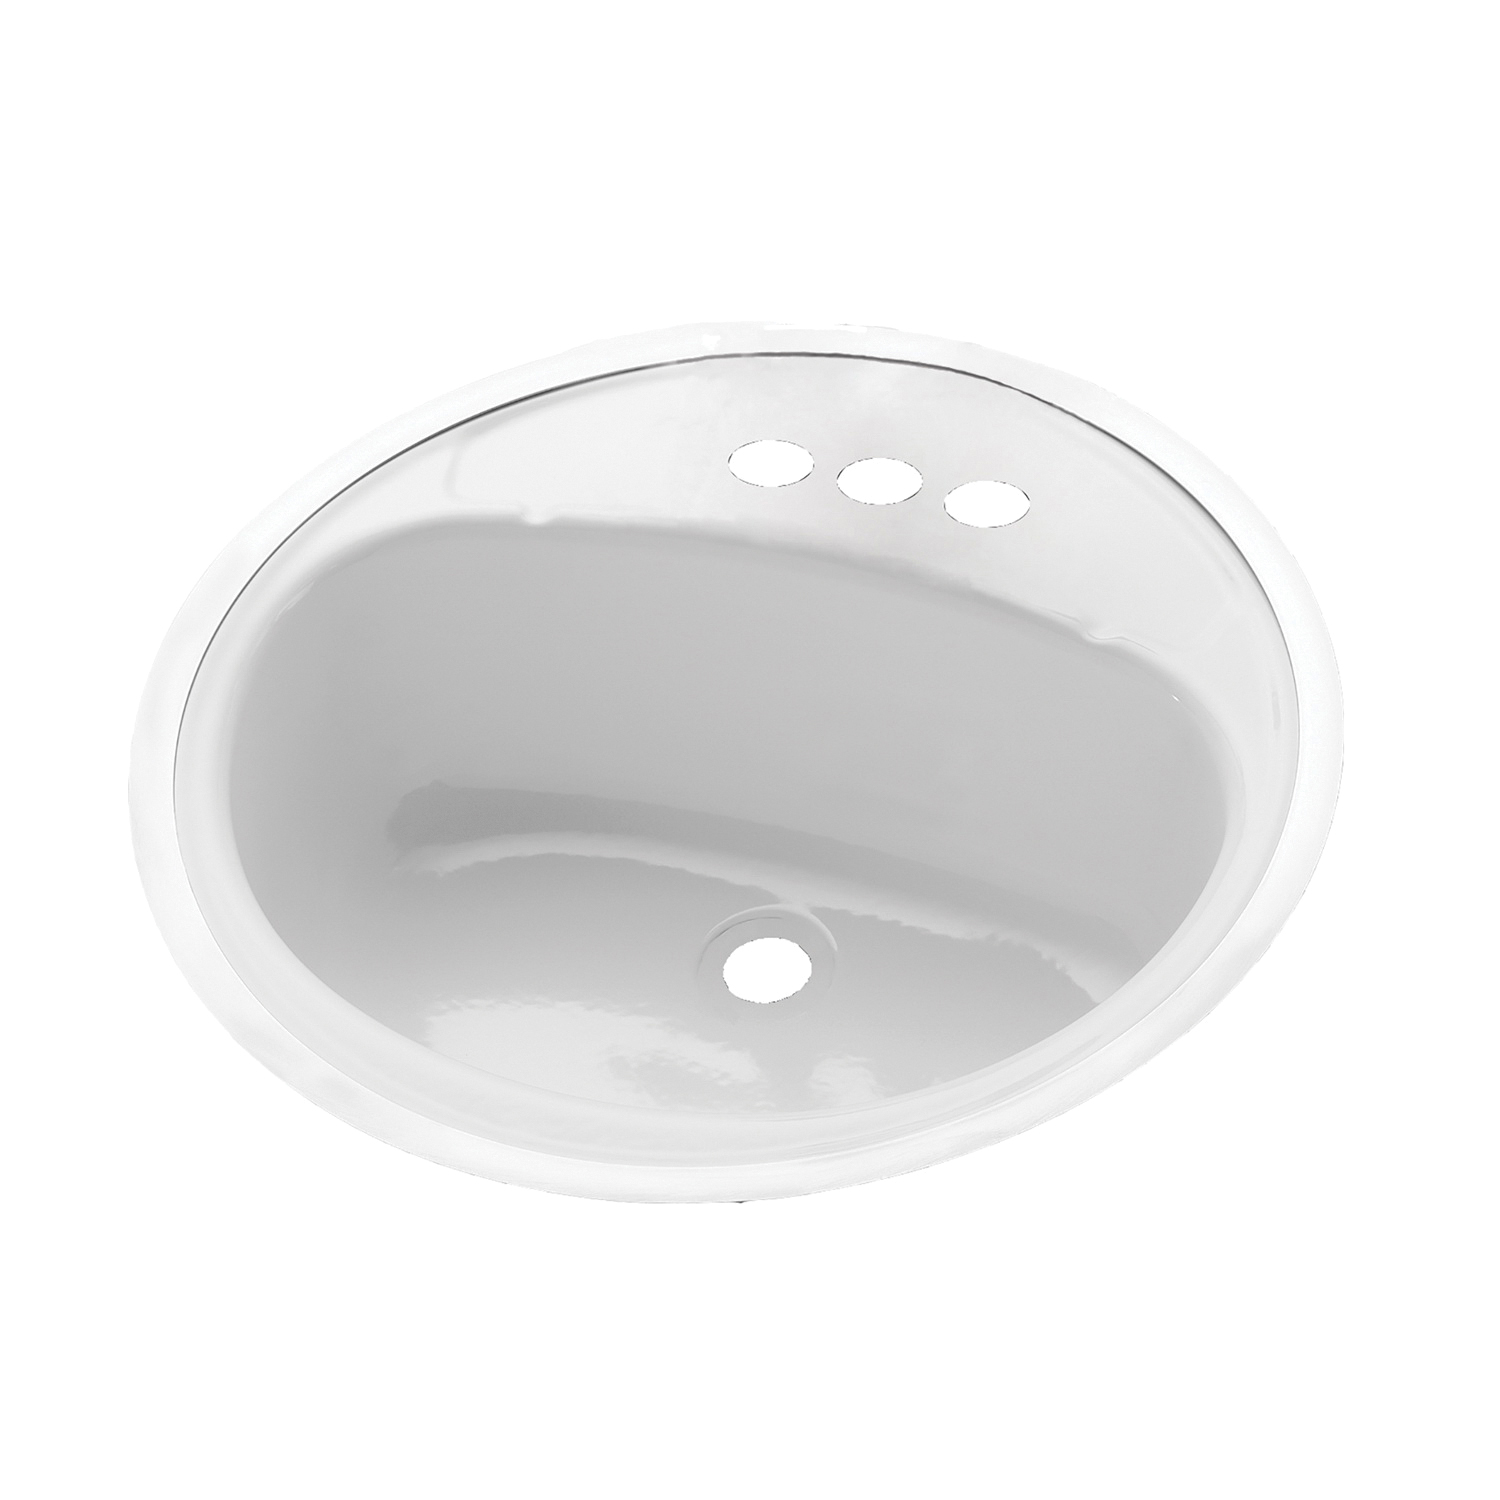 BOOTZ® 021-2430-00 Centerset Punch Lavatory Sink With Soap Depressions, Daisy, Round Shape, 4 in Faucet Hole Spacing, 7-13/16 in H, Flat Surface Mount, Porcelain/Steel, White, Domestic